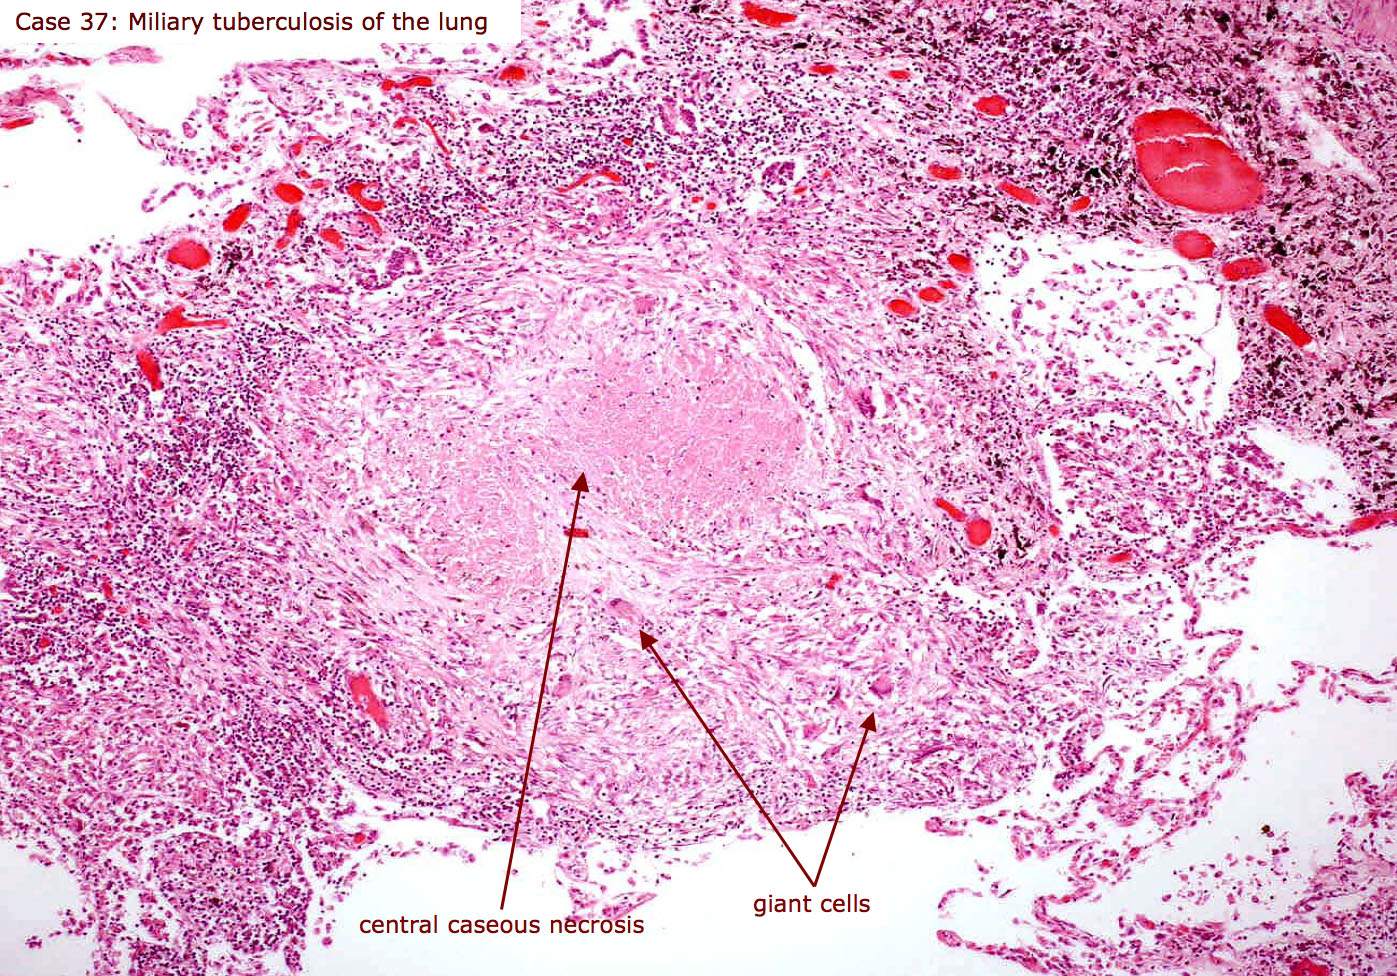 an introduction to the bovine tuberculosis the disease Bovine tuberculosis (tb) is a chronic disease of animals caused by a bacterium called mycobacterium bovis (m bovis), which is closely related to the human bacterium and avian tuberculosis.